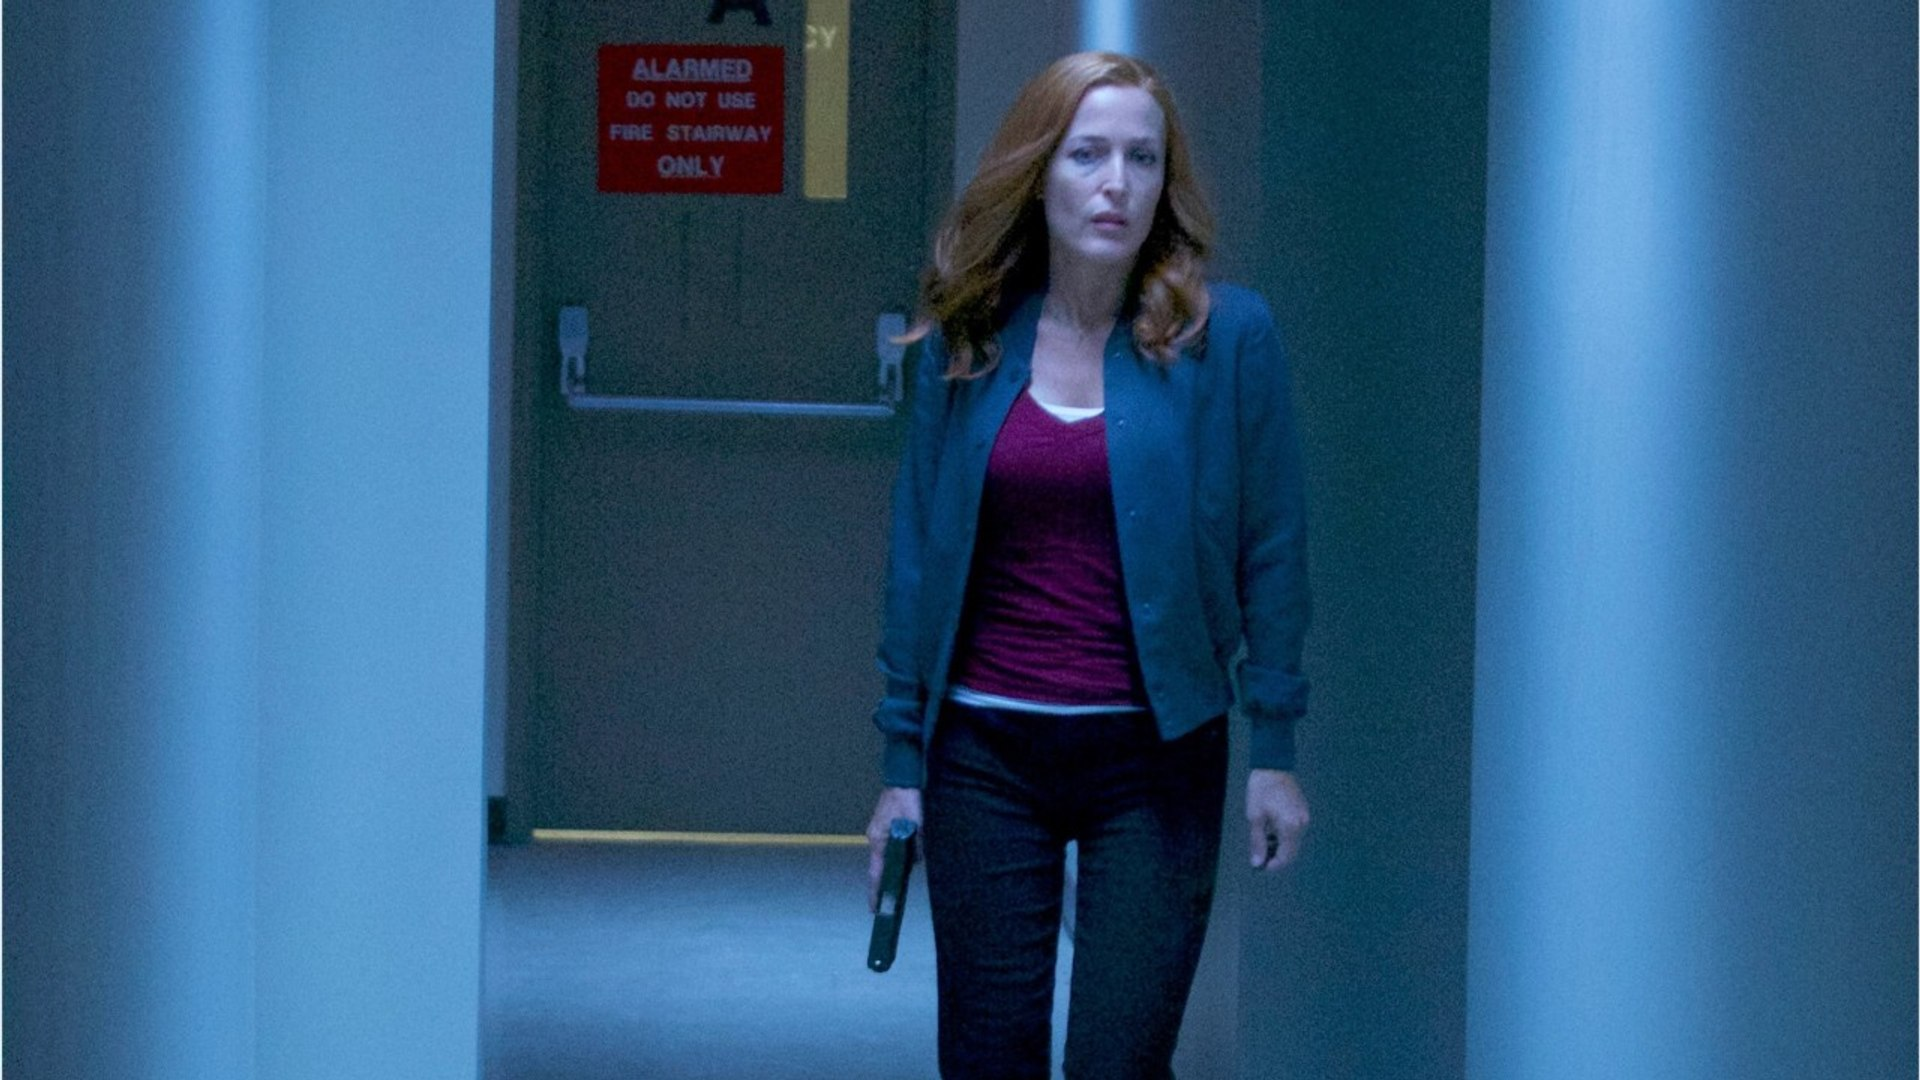 Will Gillian Anderson Return To 'X-Files' After Season 11?